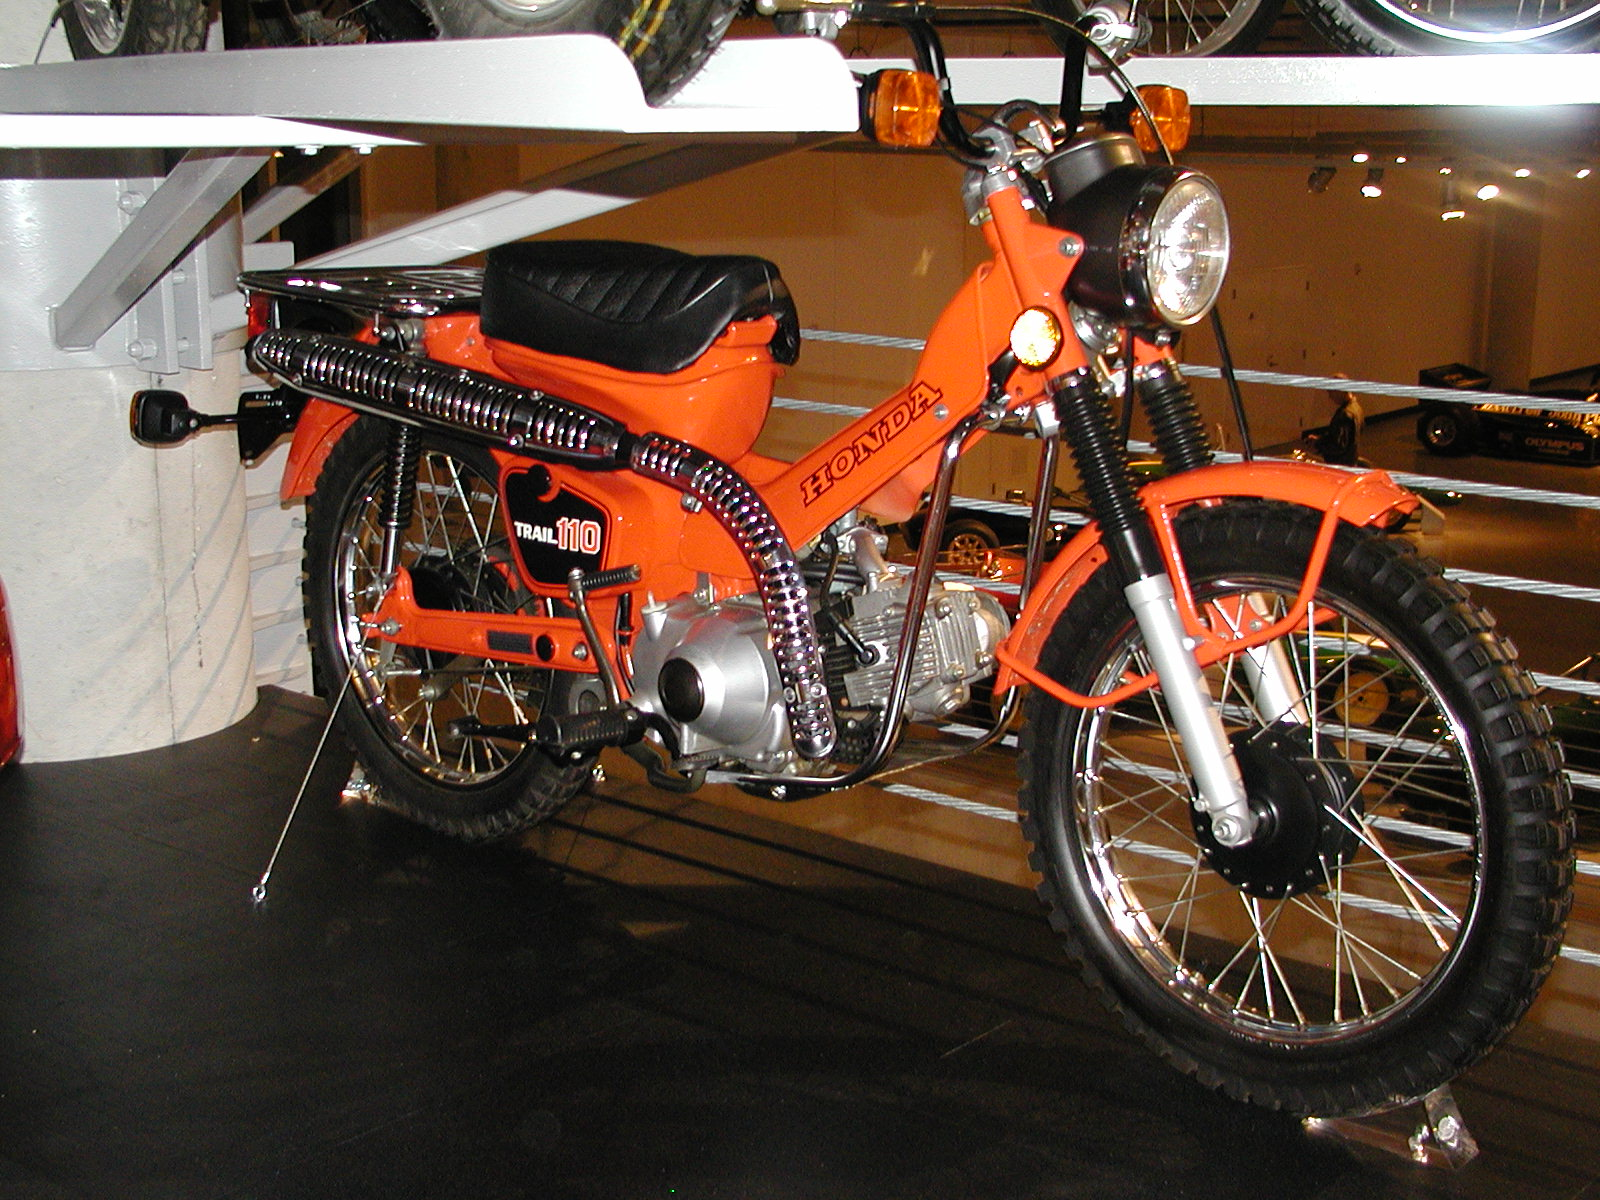 File:Honda TRAIL110 CT110 Hunter Cub.jpg